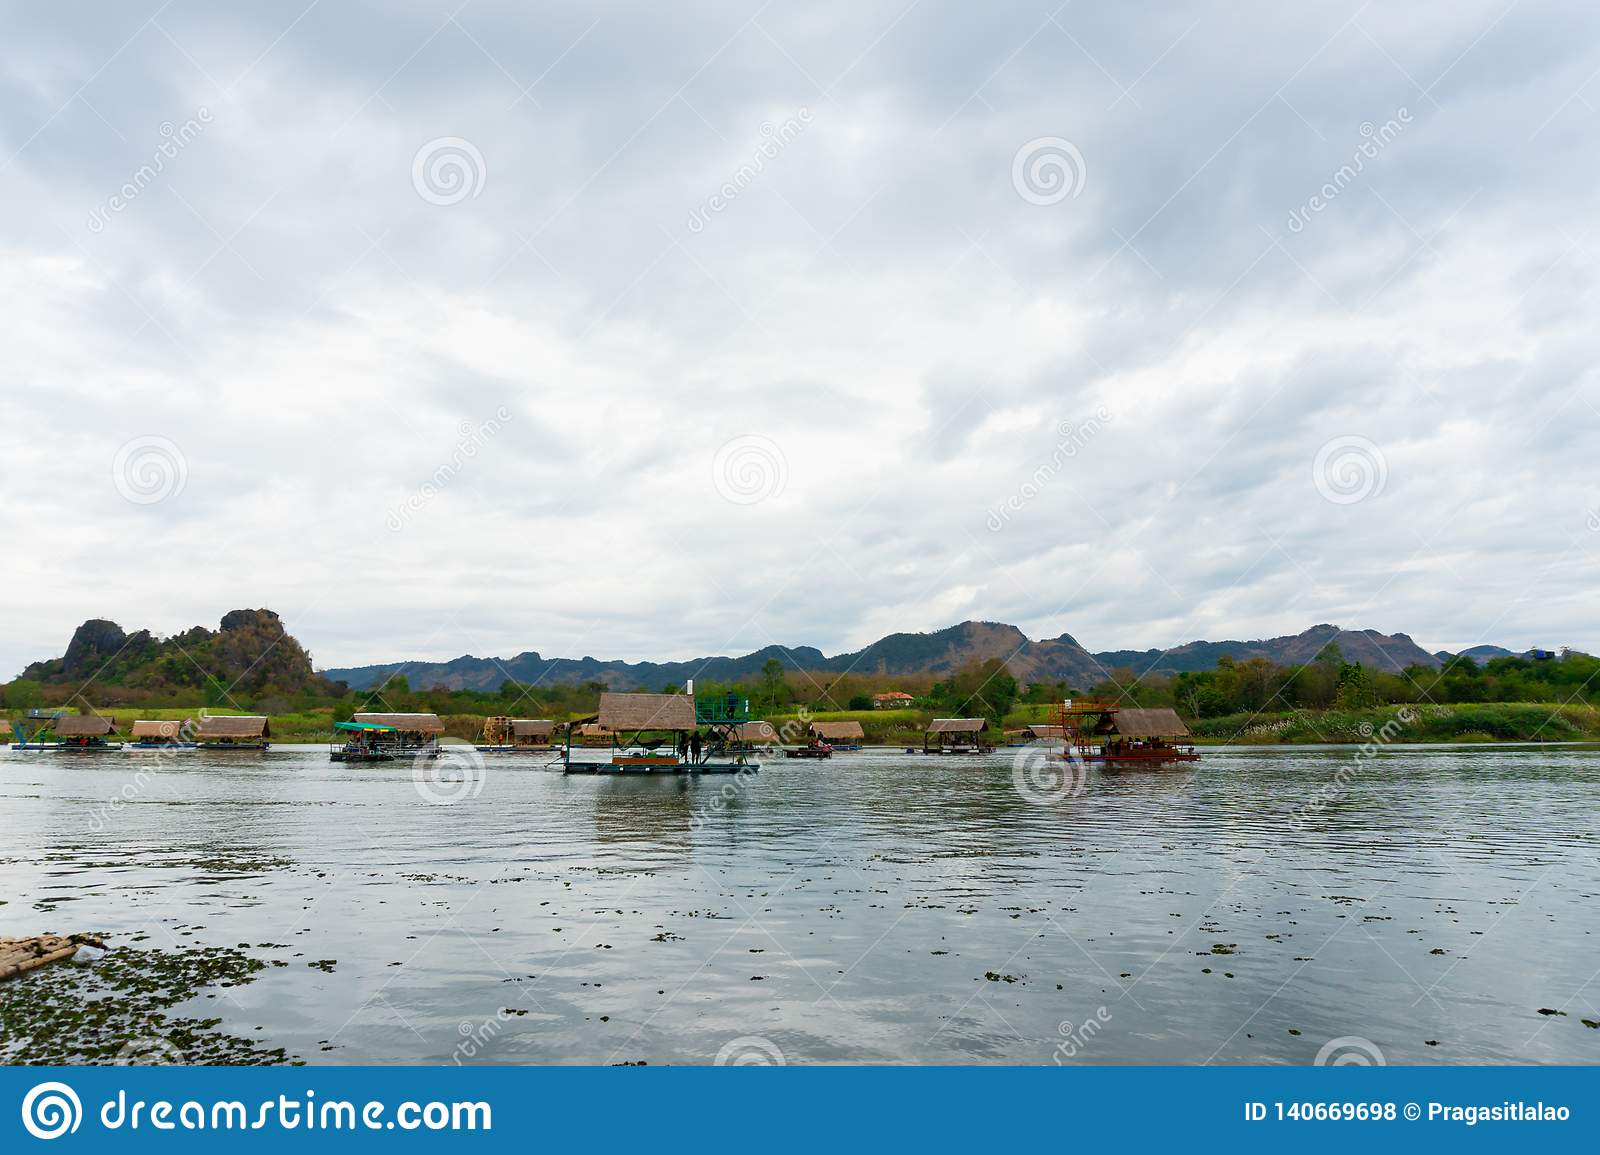 Huai Muang, Thailand lake with boat house the place of relax